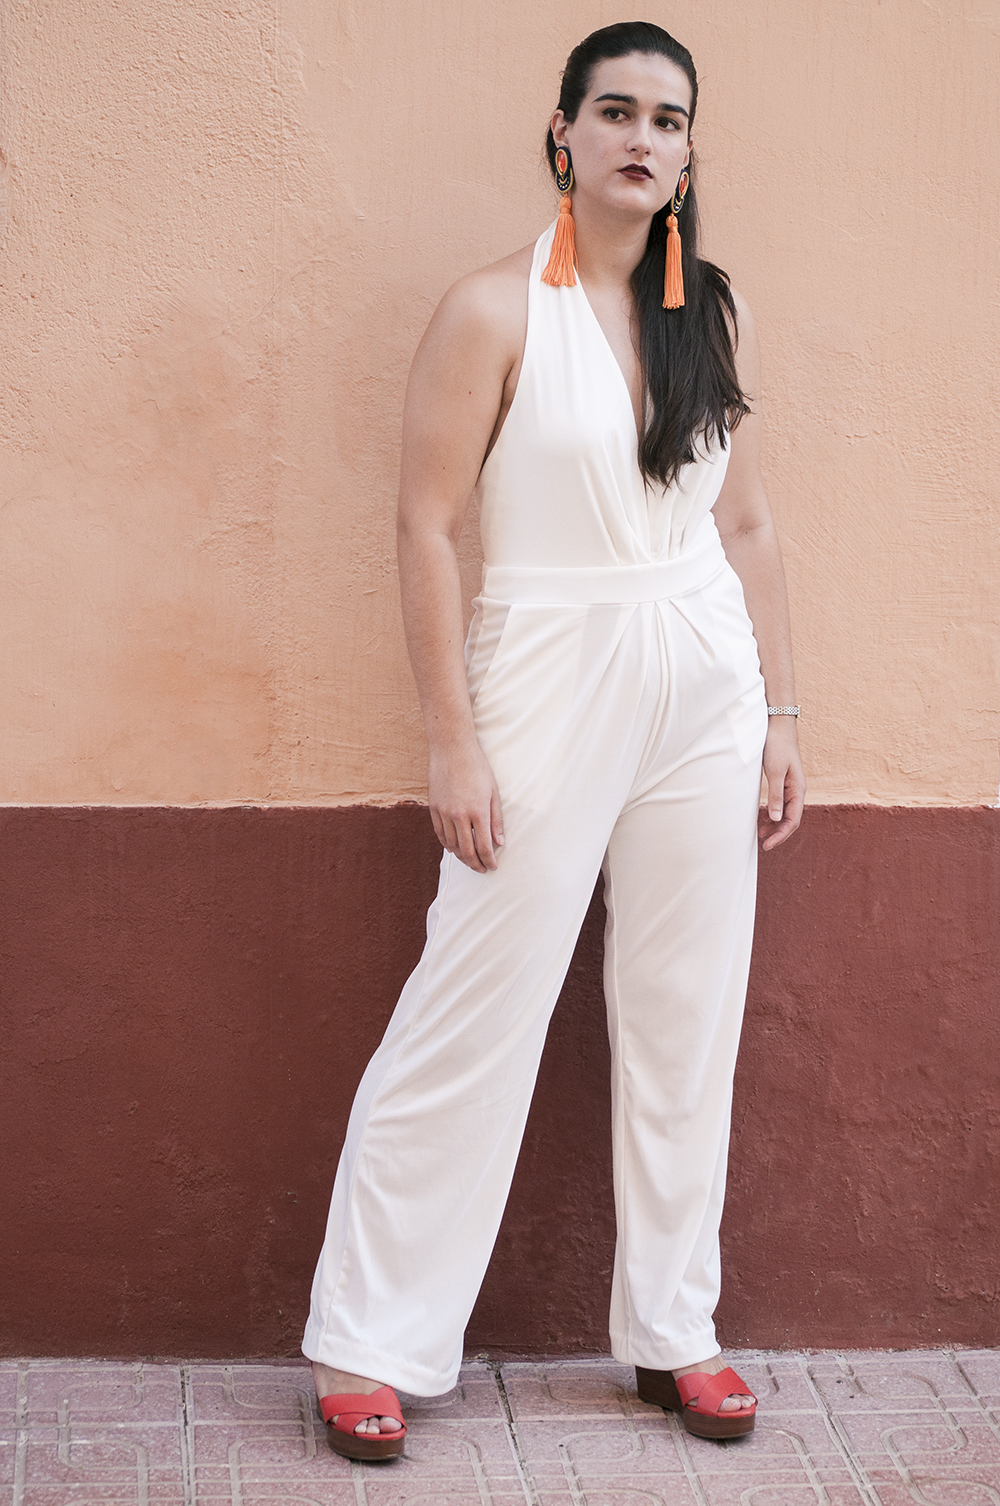 something fashion blogger influencer streetstyle spain valencia outfits summer jumpsuit graduation university_0692